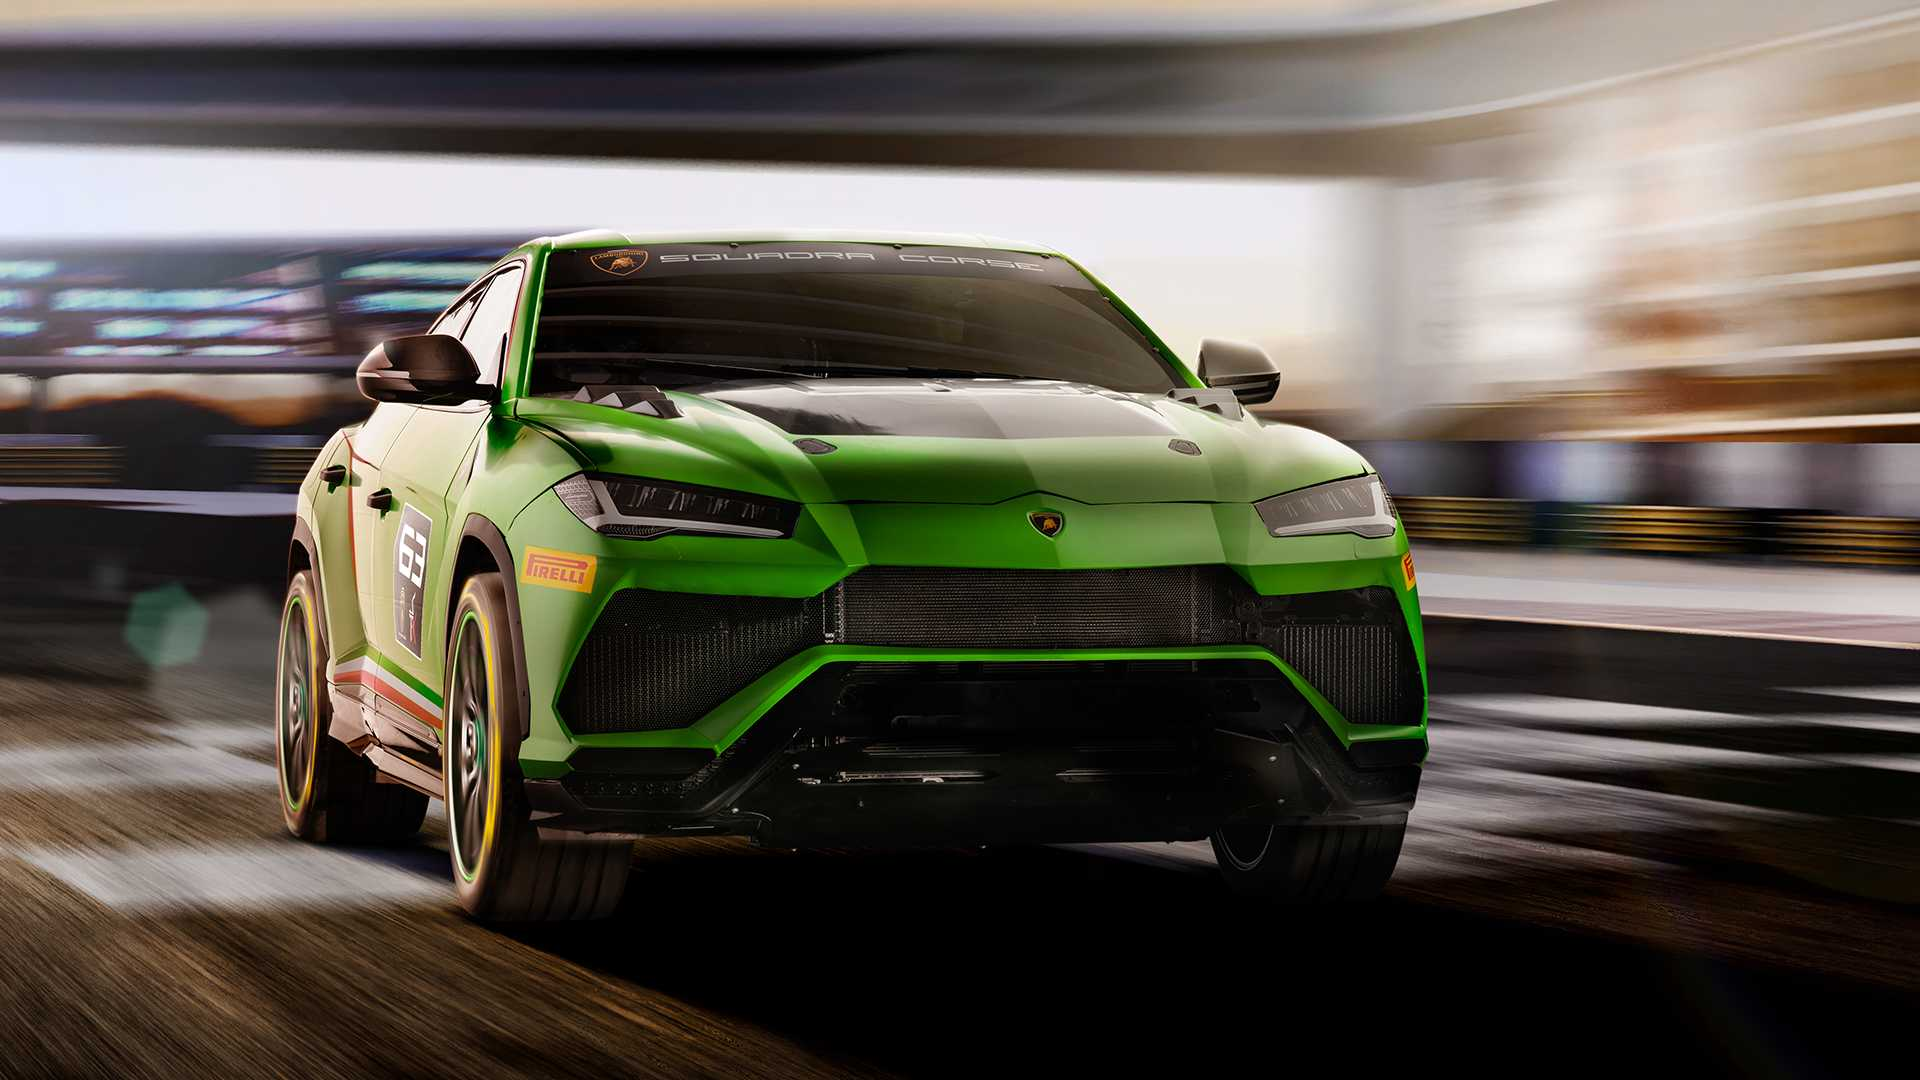 Lamborghini has begun working on a hardcore modification of its Urus luxury SUV